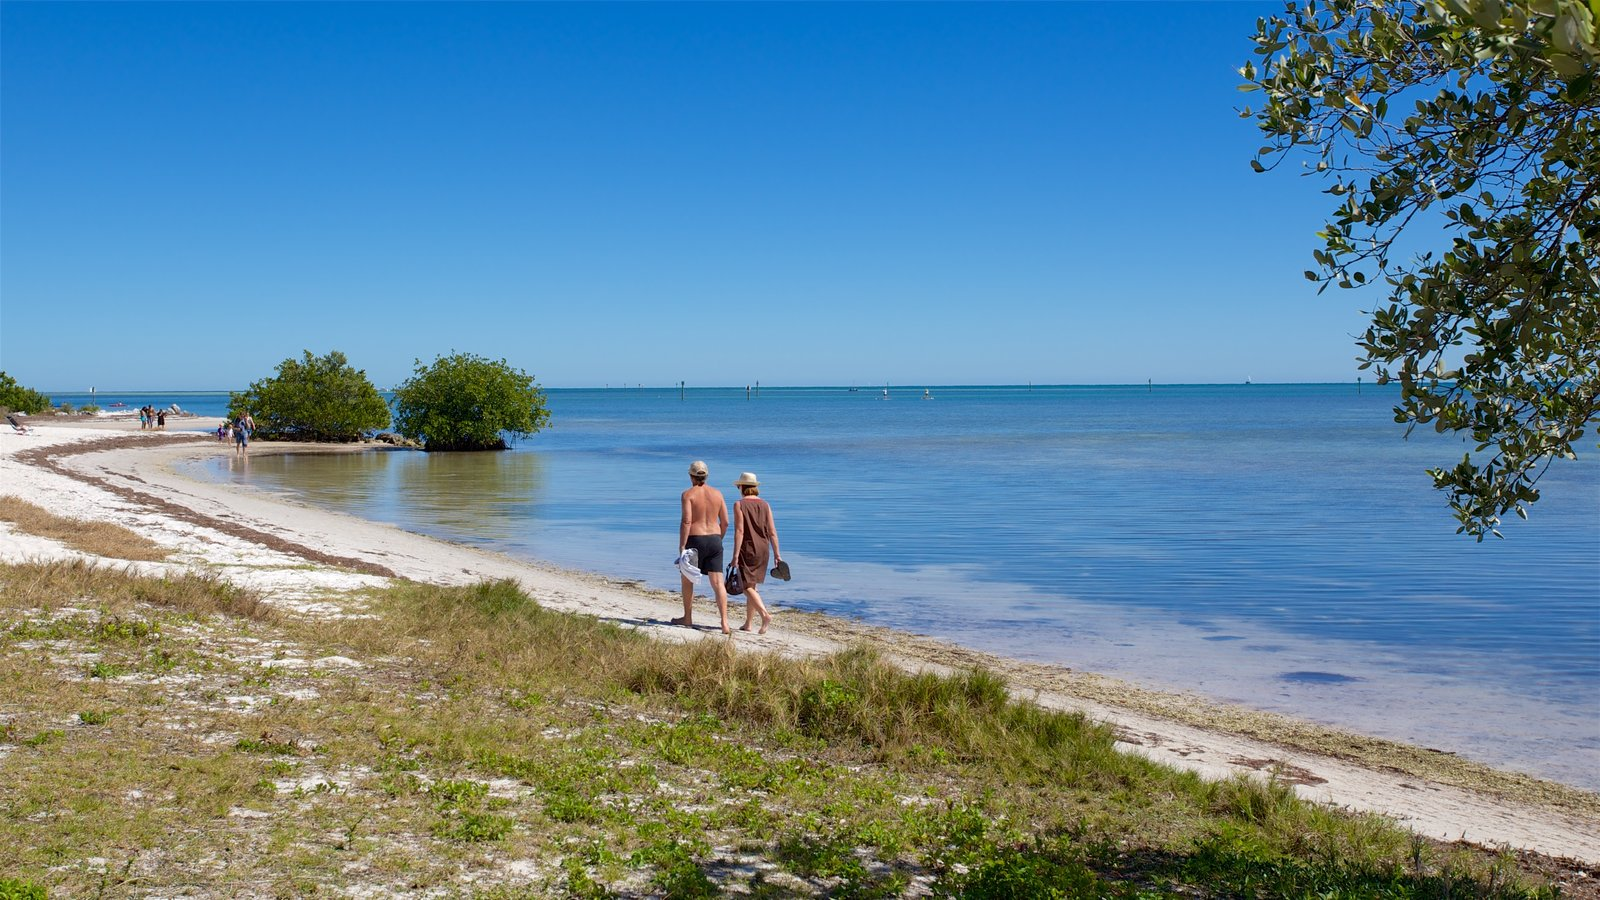 curry hammock state park showing a bay or harbor and a sandy beach as well as beach pictures  view images of marathon  rh   expedia